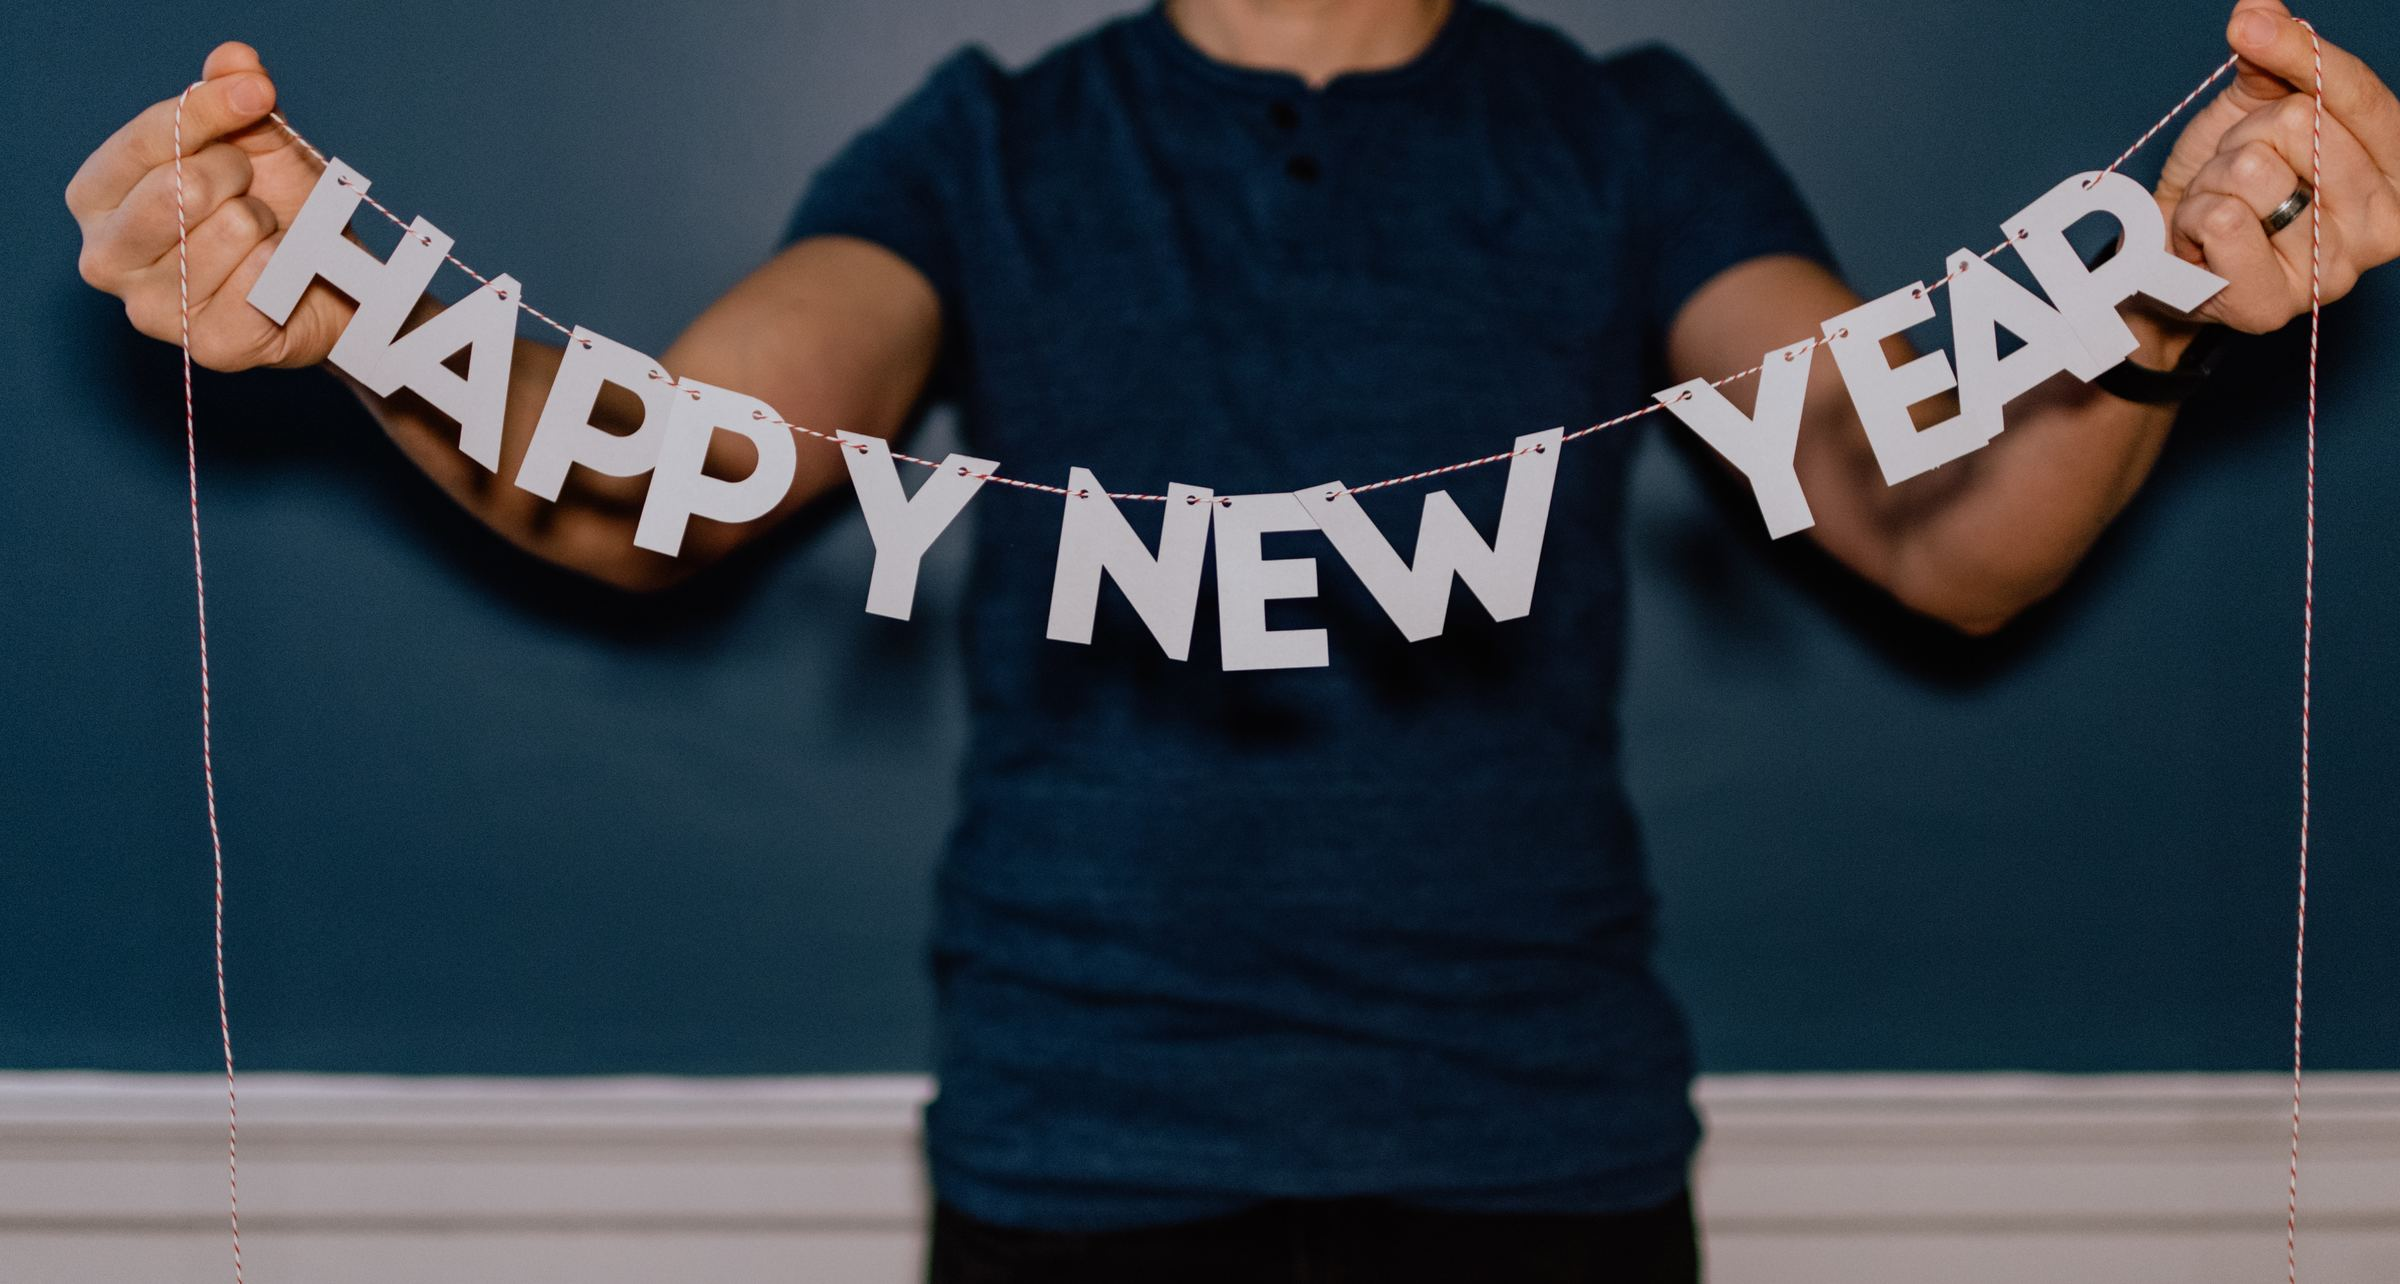 New year, new decade….